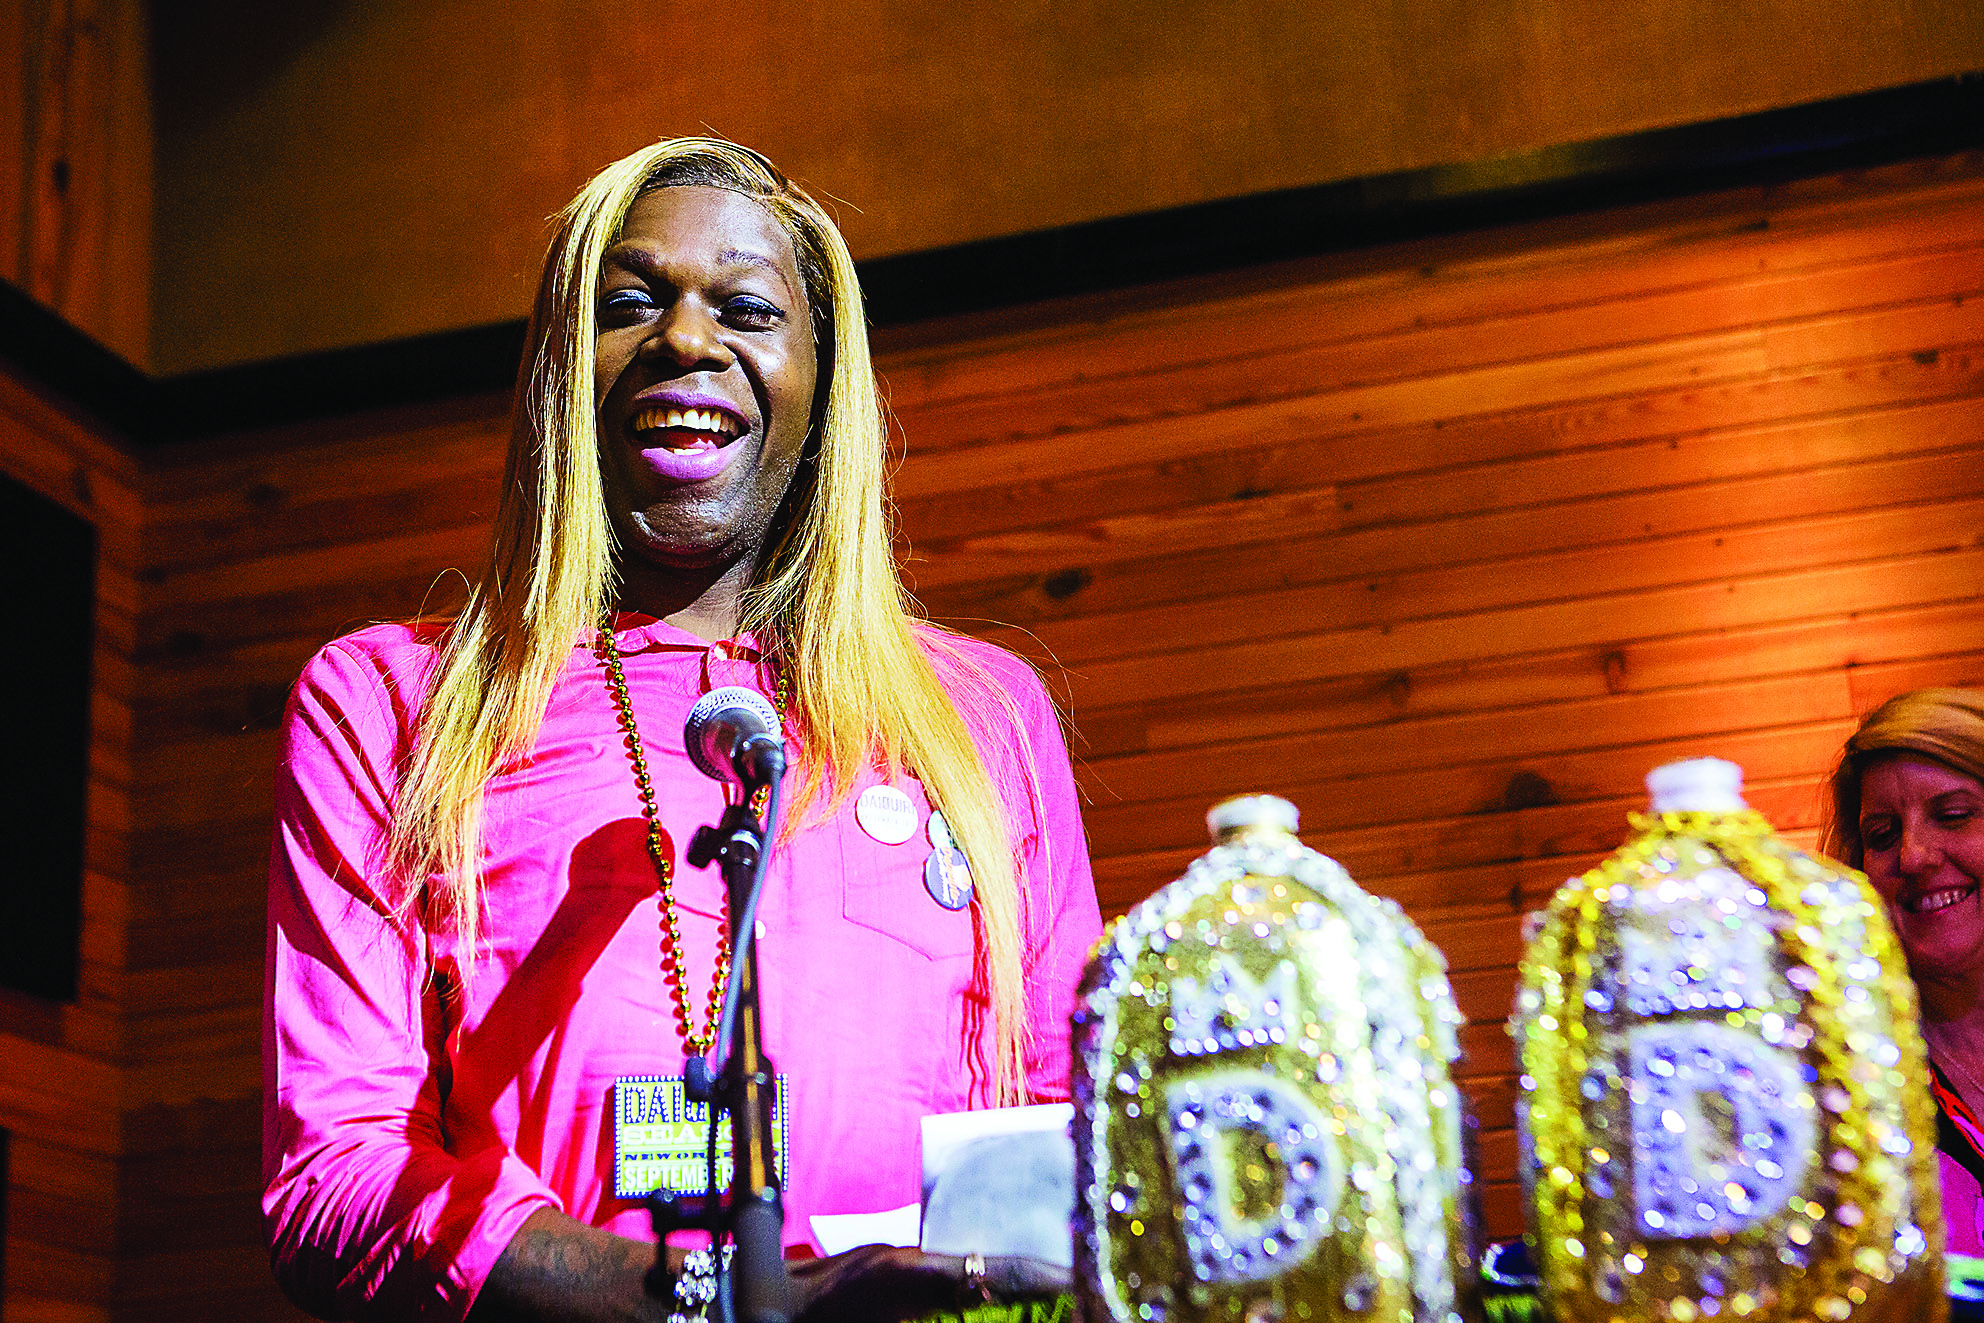 New Orleans music celebrity Big Freedia announces the Duke and Duchess of The Daiquiri Sept. 13 at the Ace Hotel. The winners of the first ever daiquiri competition were selected out of 43 different specialty drinks submitted by bars and restaurants participating in Daiquiri Season. (Courtesy of Josh Brasted)